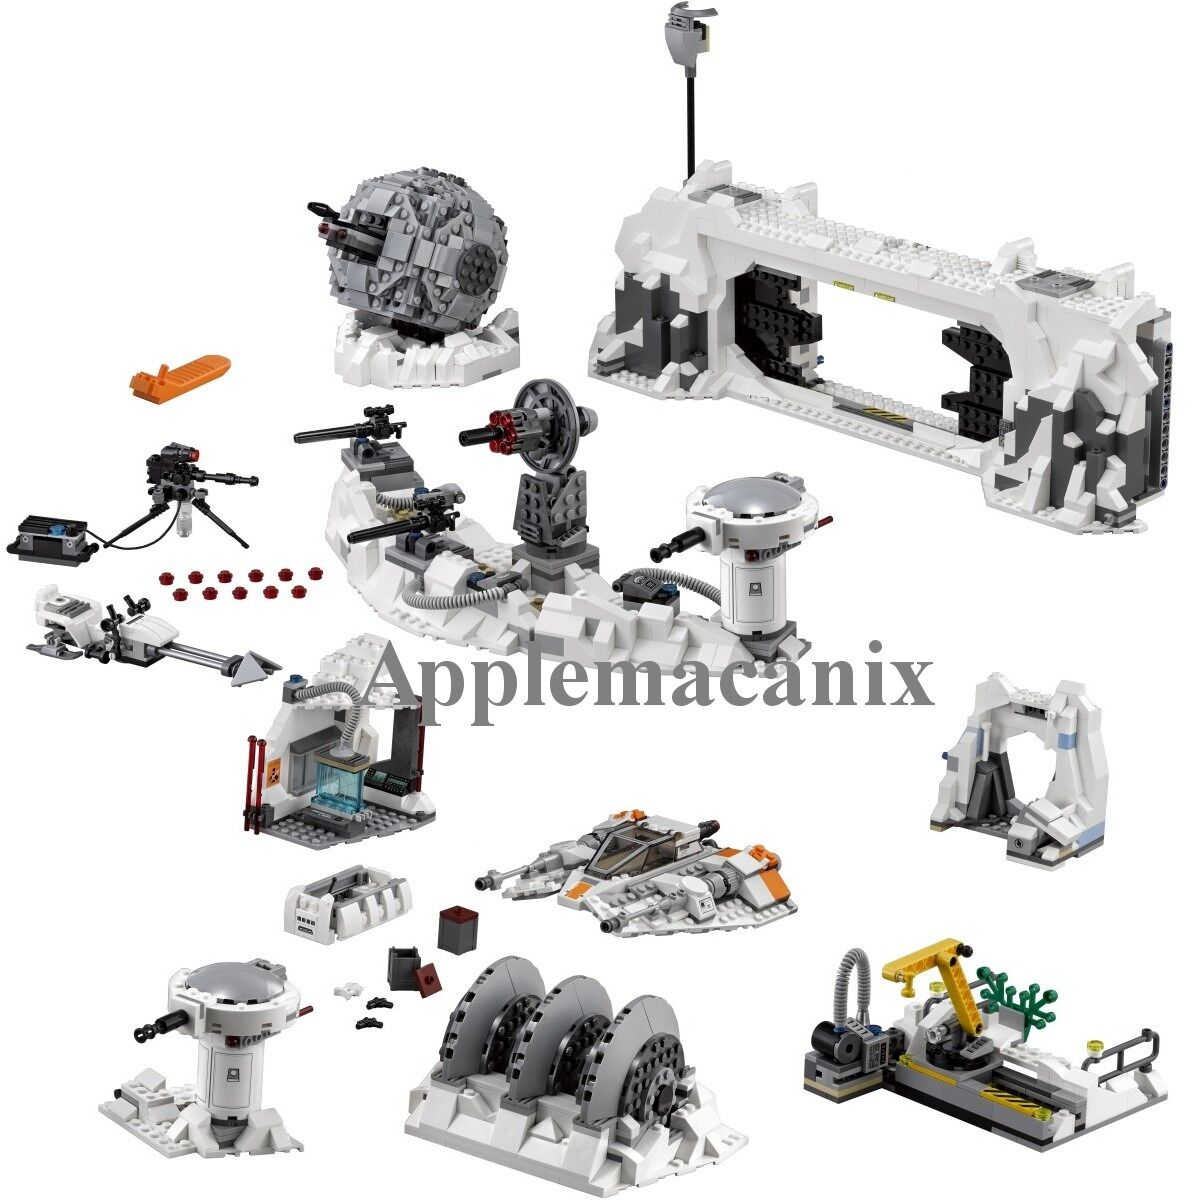 NEW LEGO 75098 Assault on Hoth Set & Manual NO MINIFIGURES - AUTHENTIC LEGO